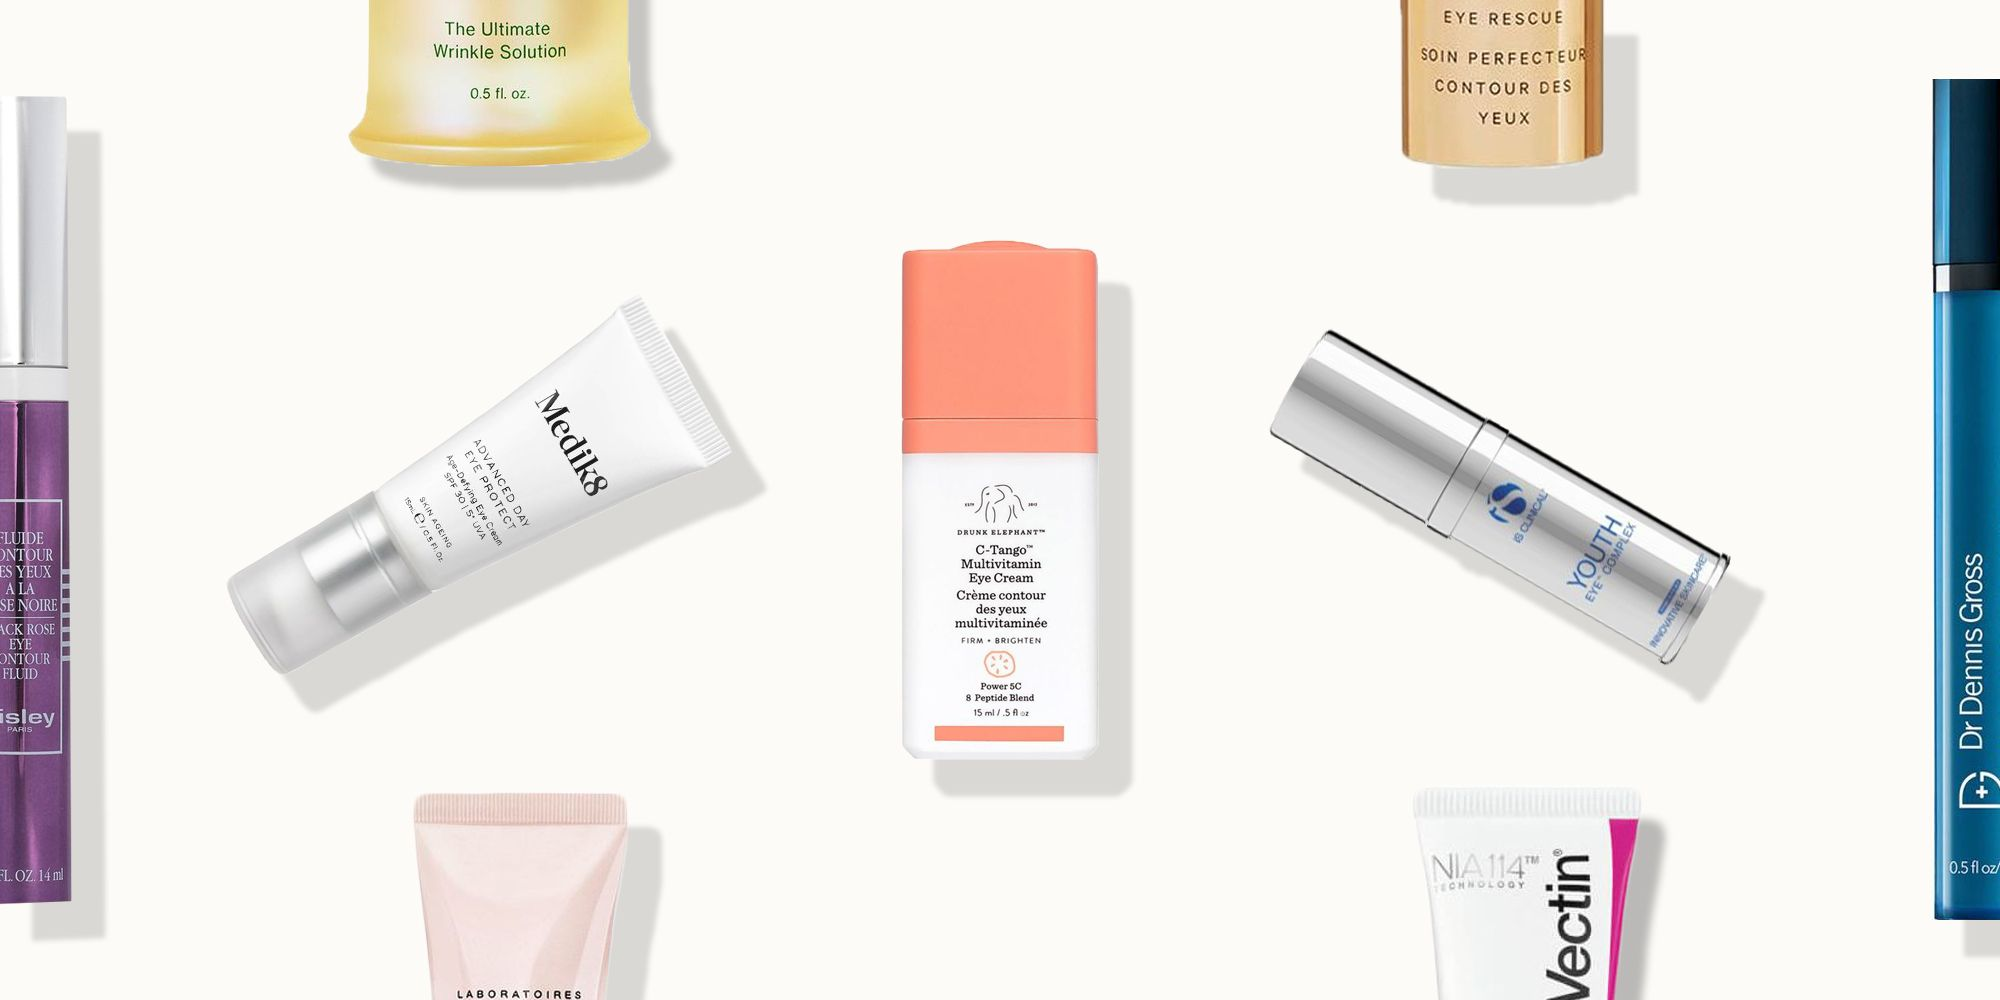 The Best Eye Creams For Puffy Bags And Dark Circles